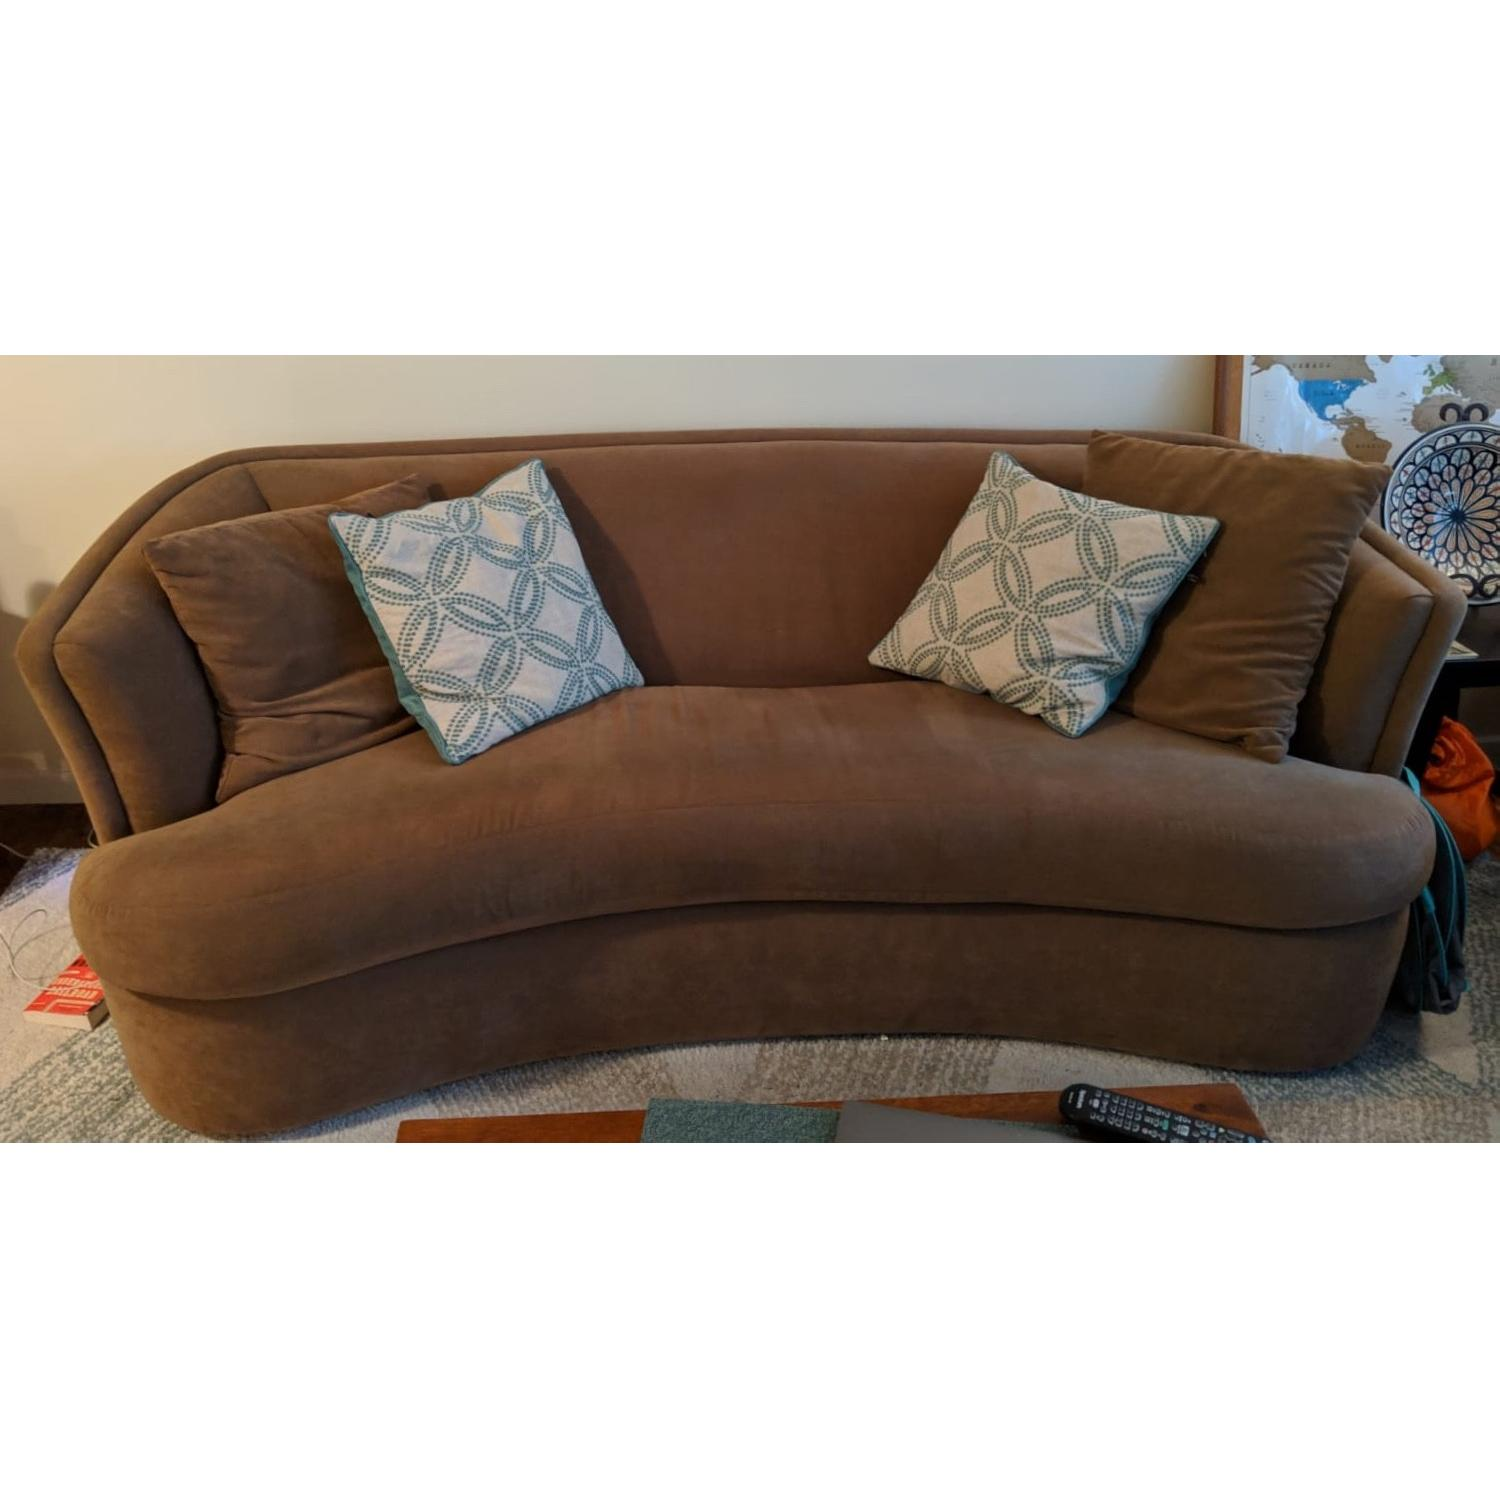 Tan Suede Curved Sofa-0